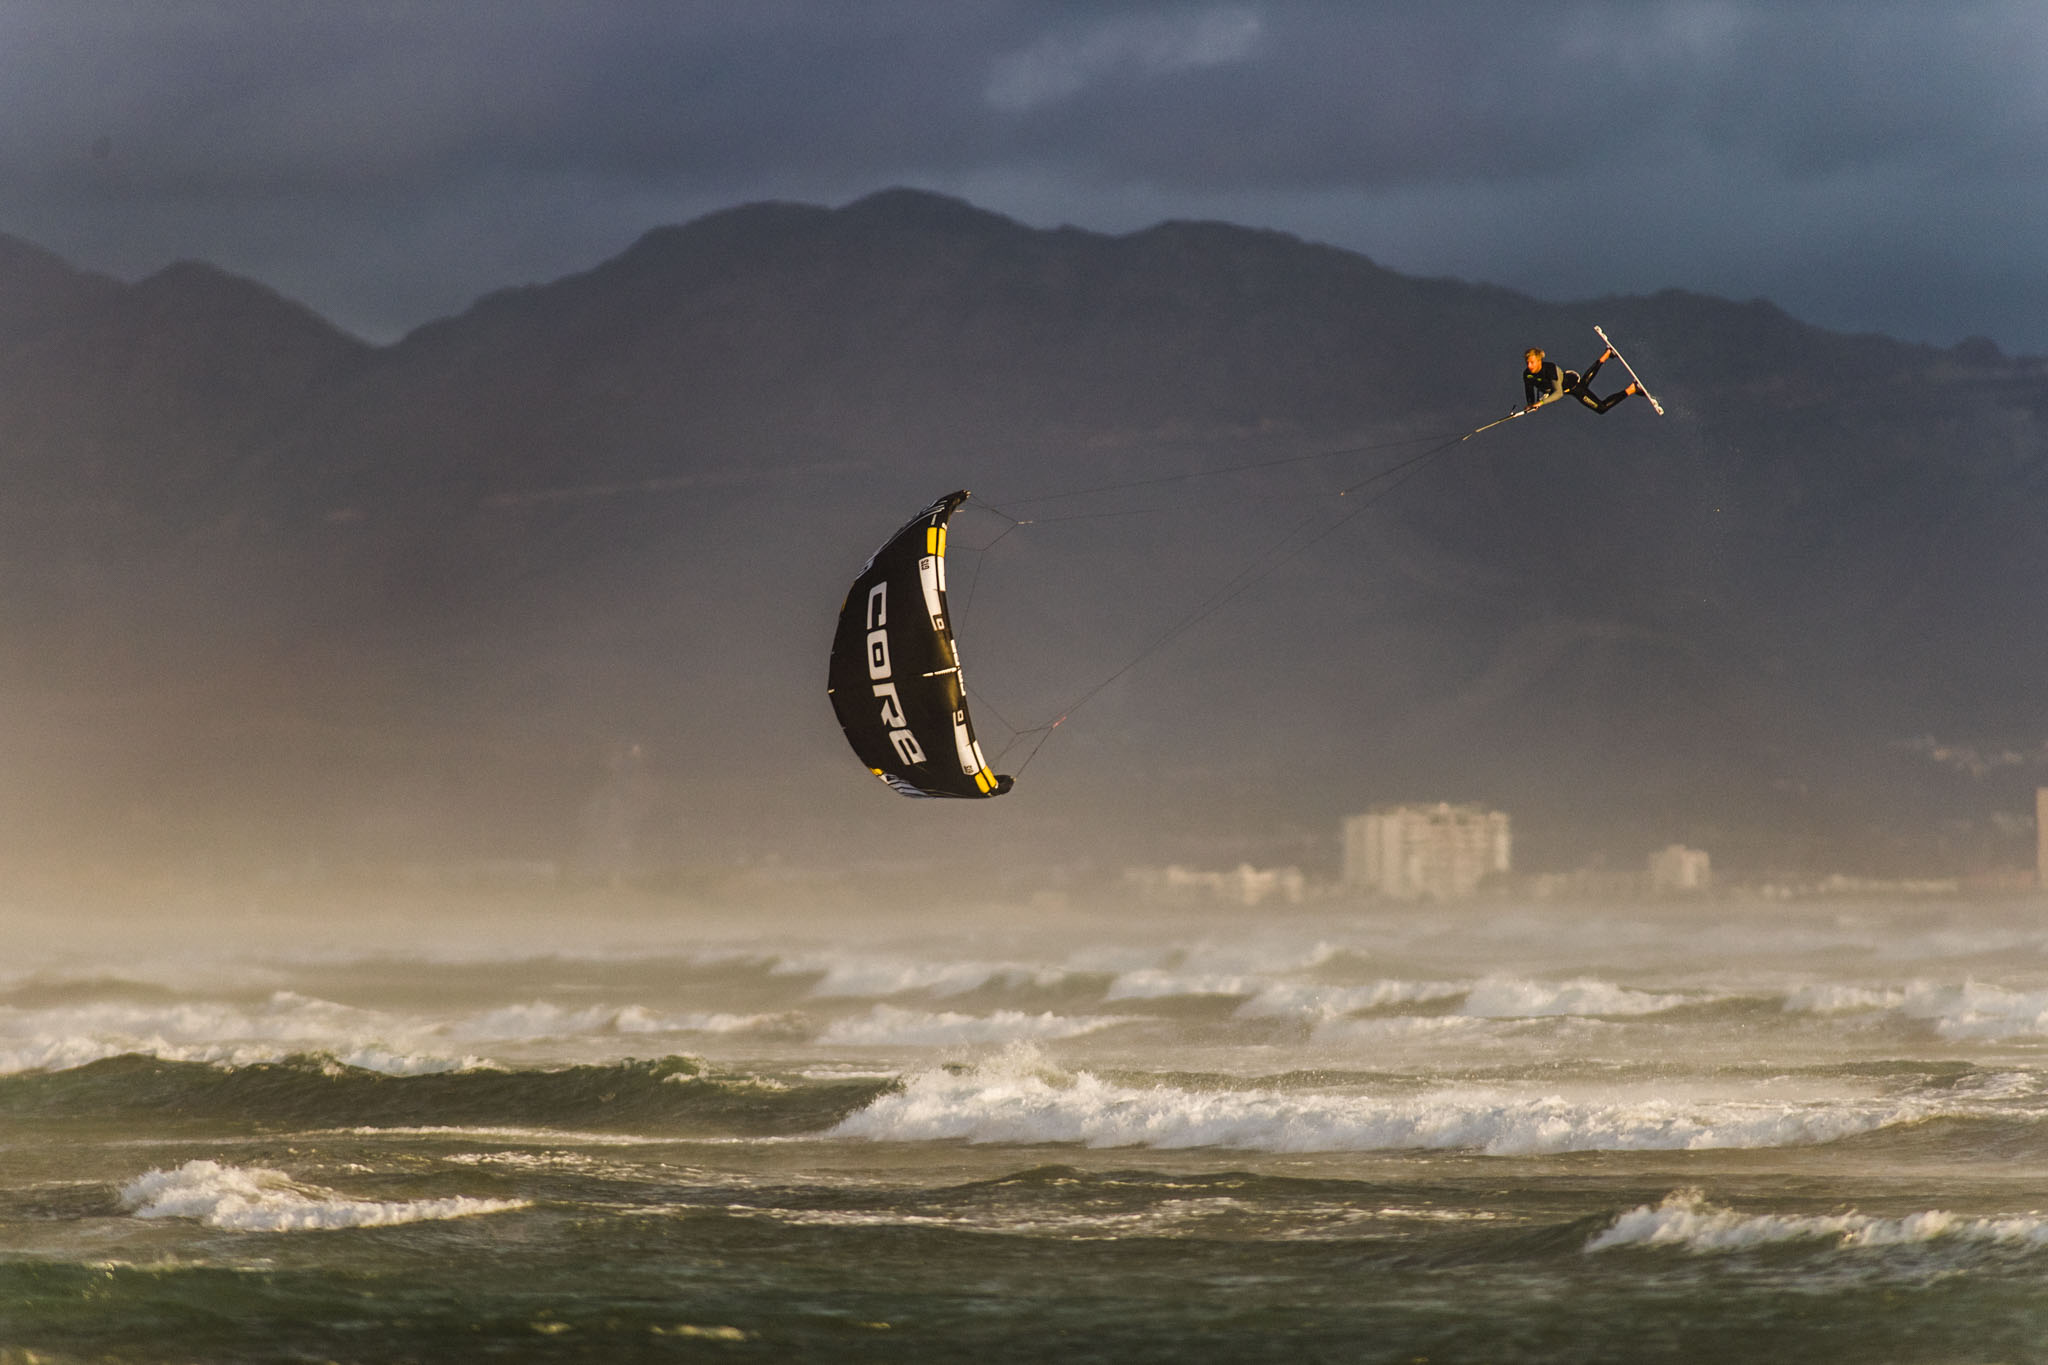 Megaloop in South Africa - Thomas Brublies